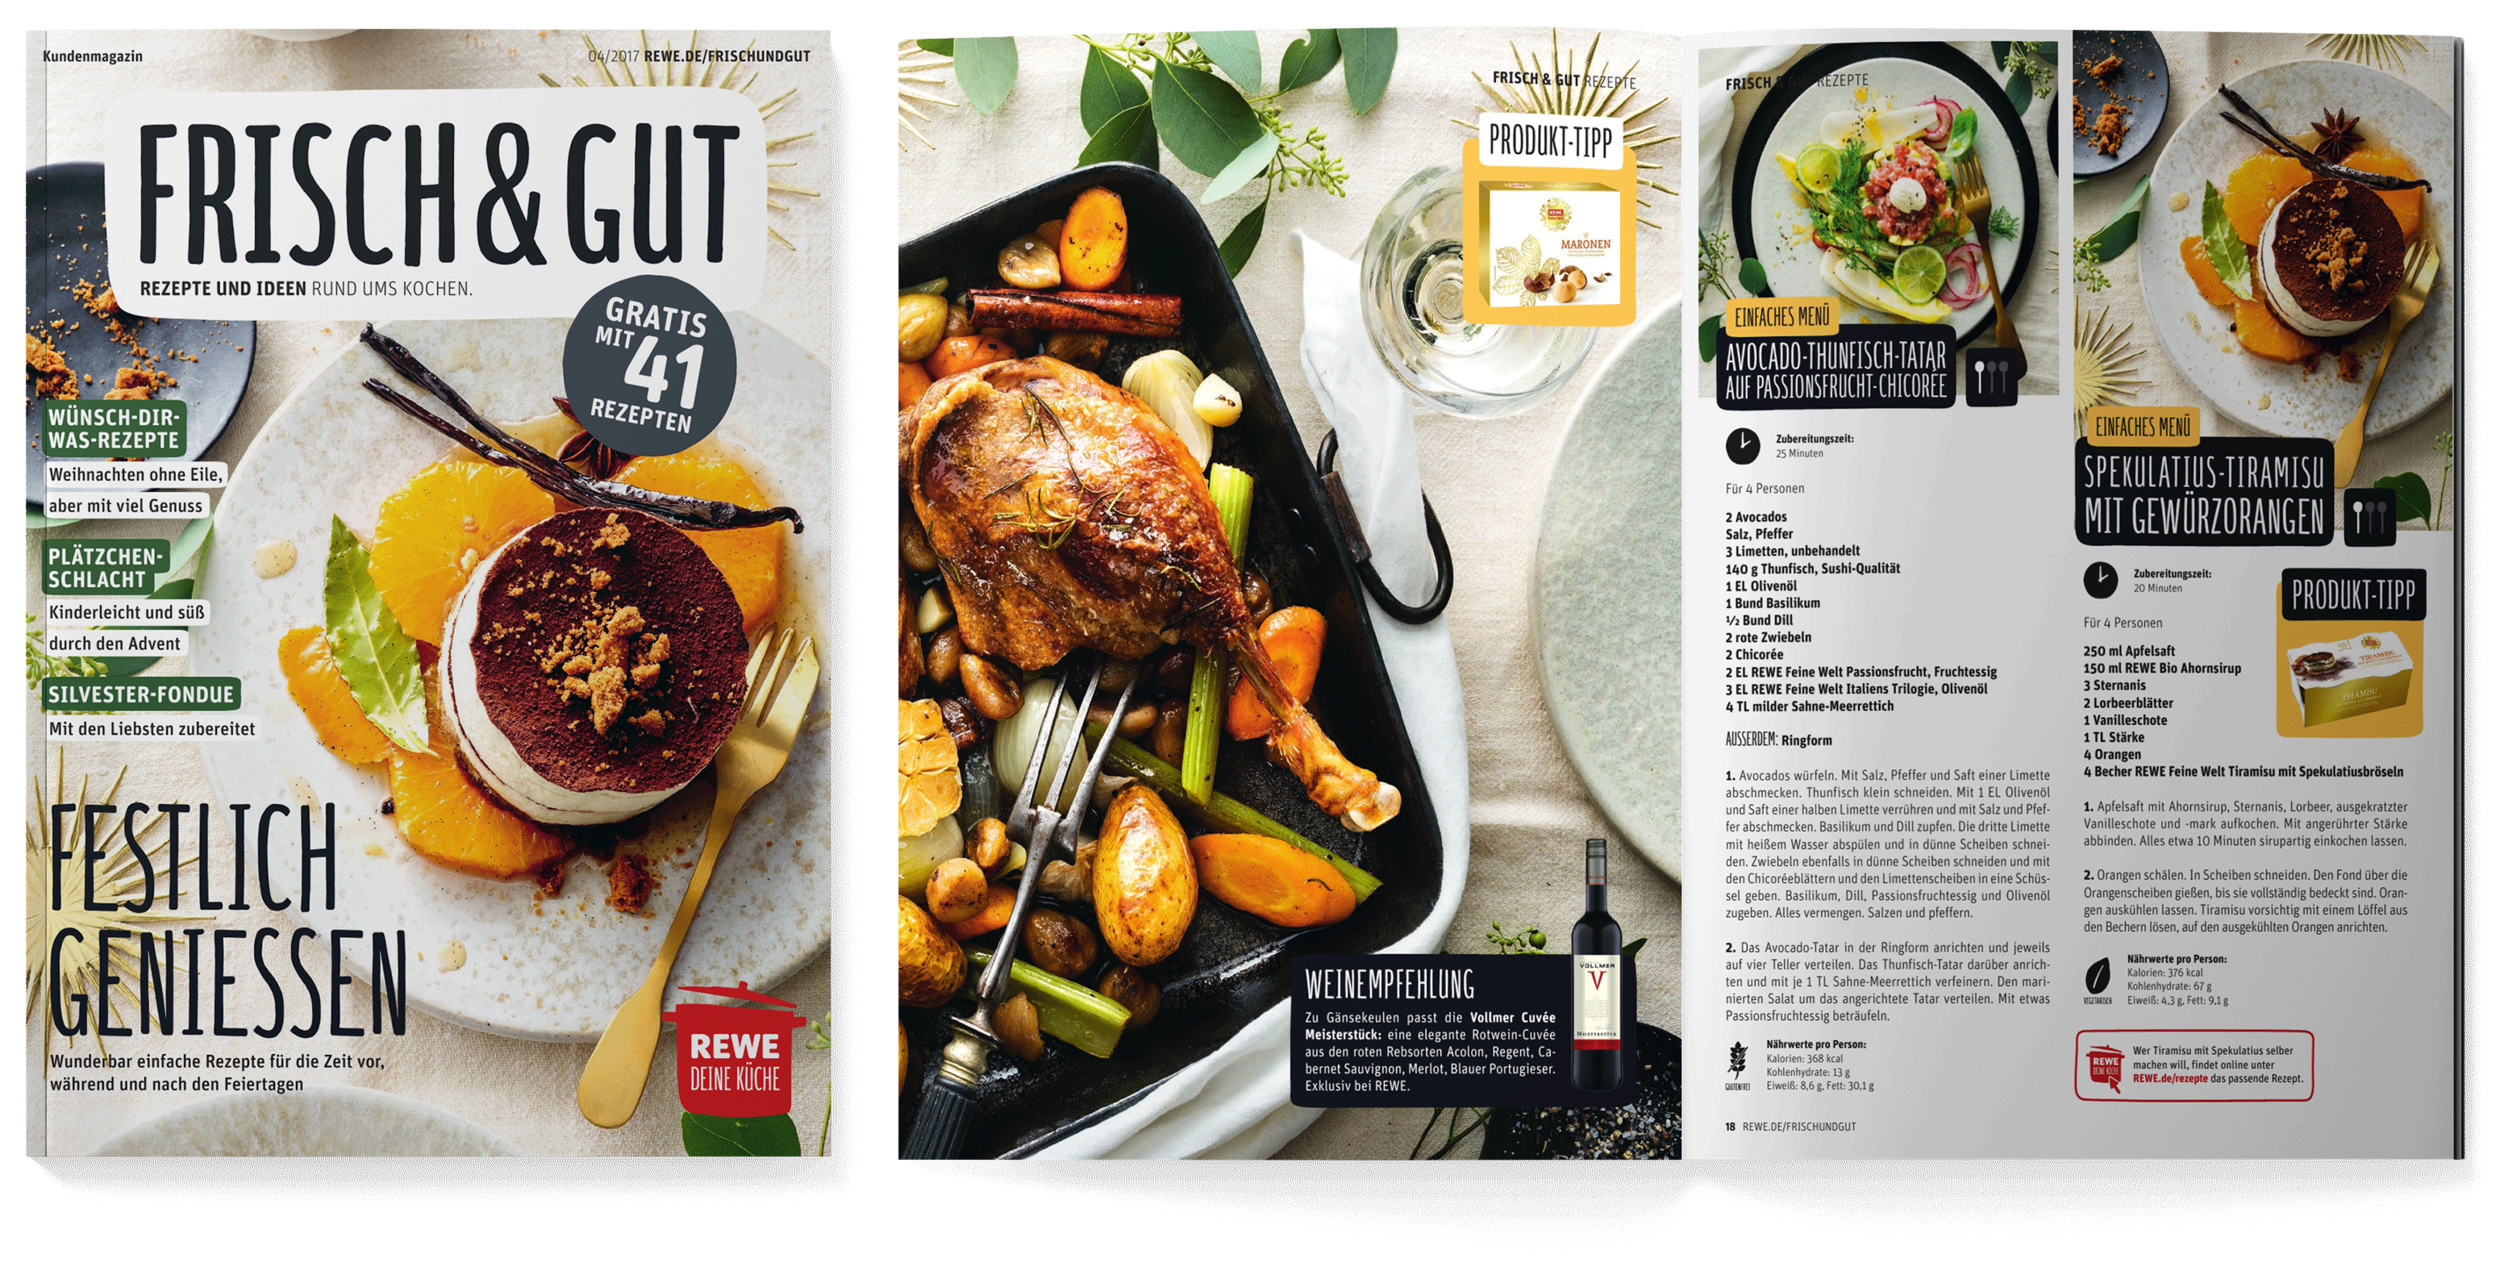 3100x2160px_REWE_Campaigns_02_Print_Survive_png8.png